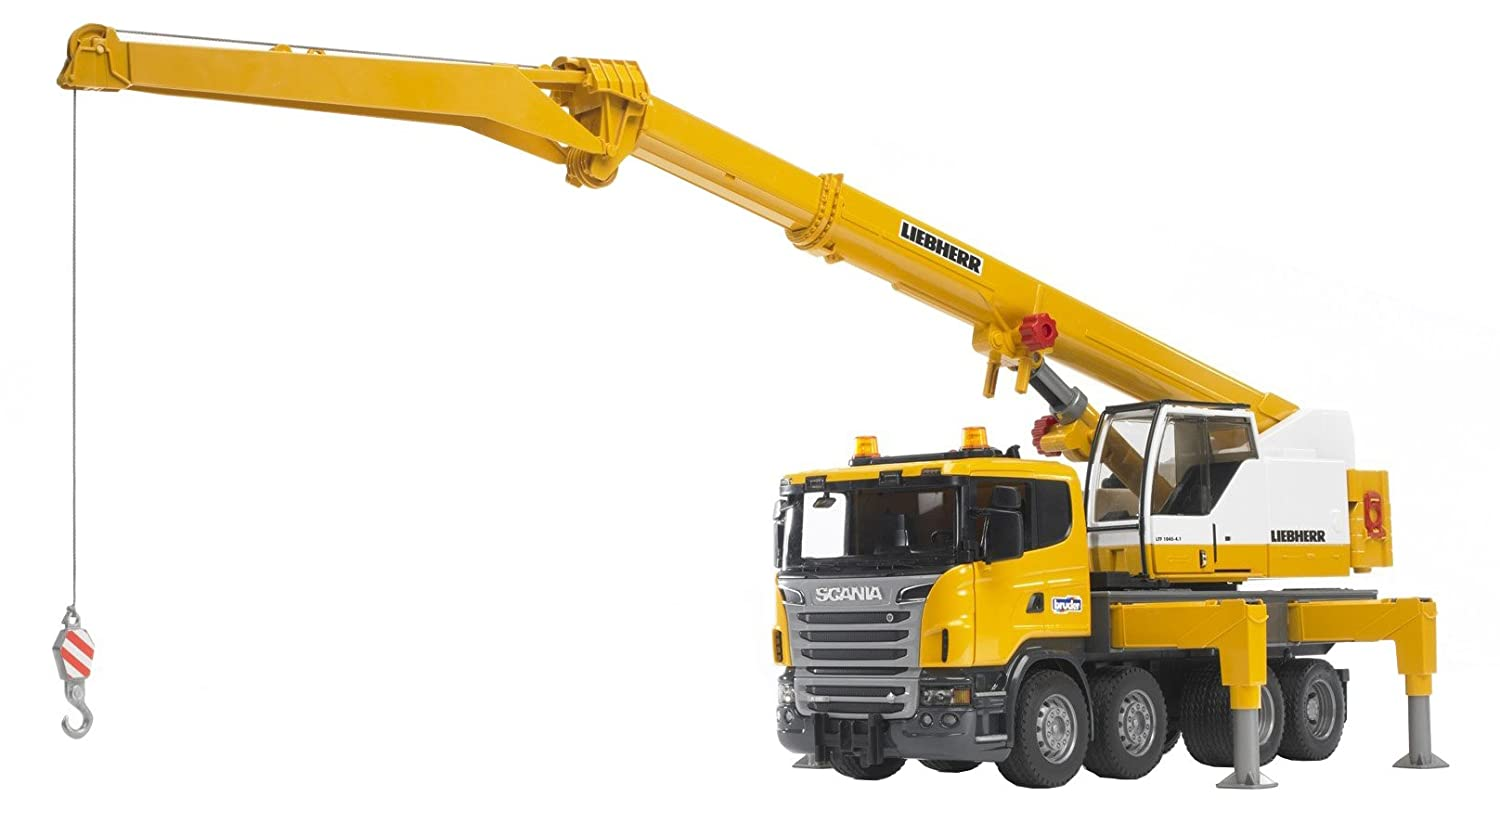 Top 9 Best Remote Control Cranes Toys Reviews in 2020 6